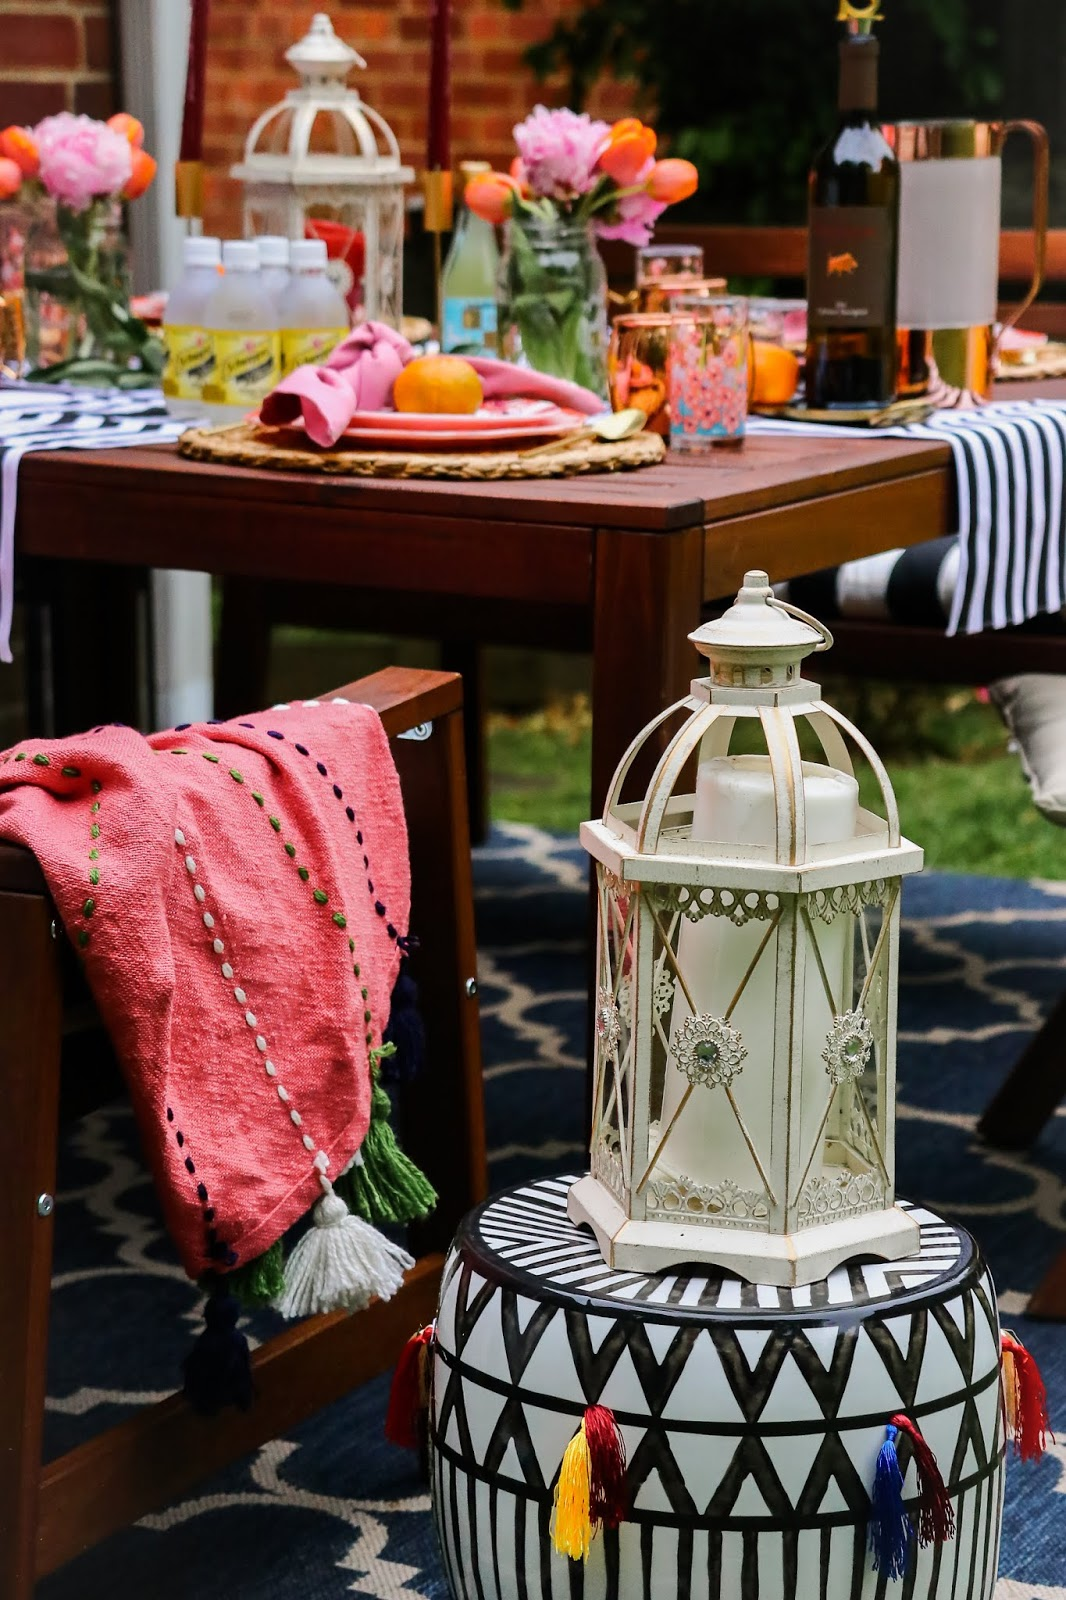 patio entertaining, picnic table setting, target style, dc blogger, lifestyle blogger, fashion, style, backyard party, myriad musings, saumya shiohare